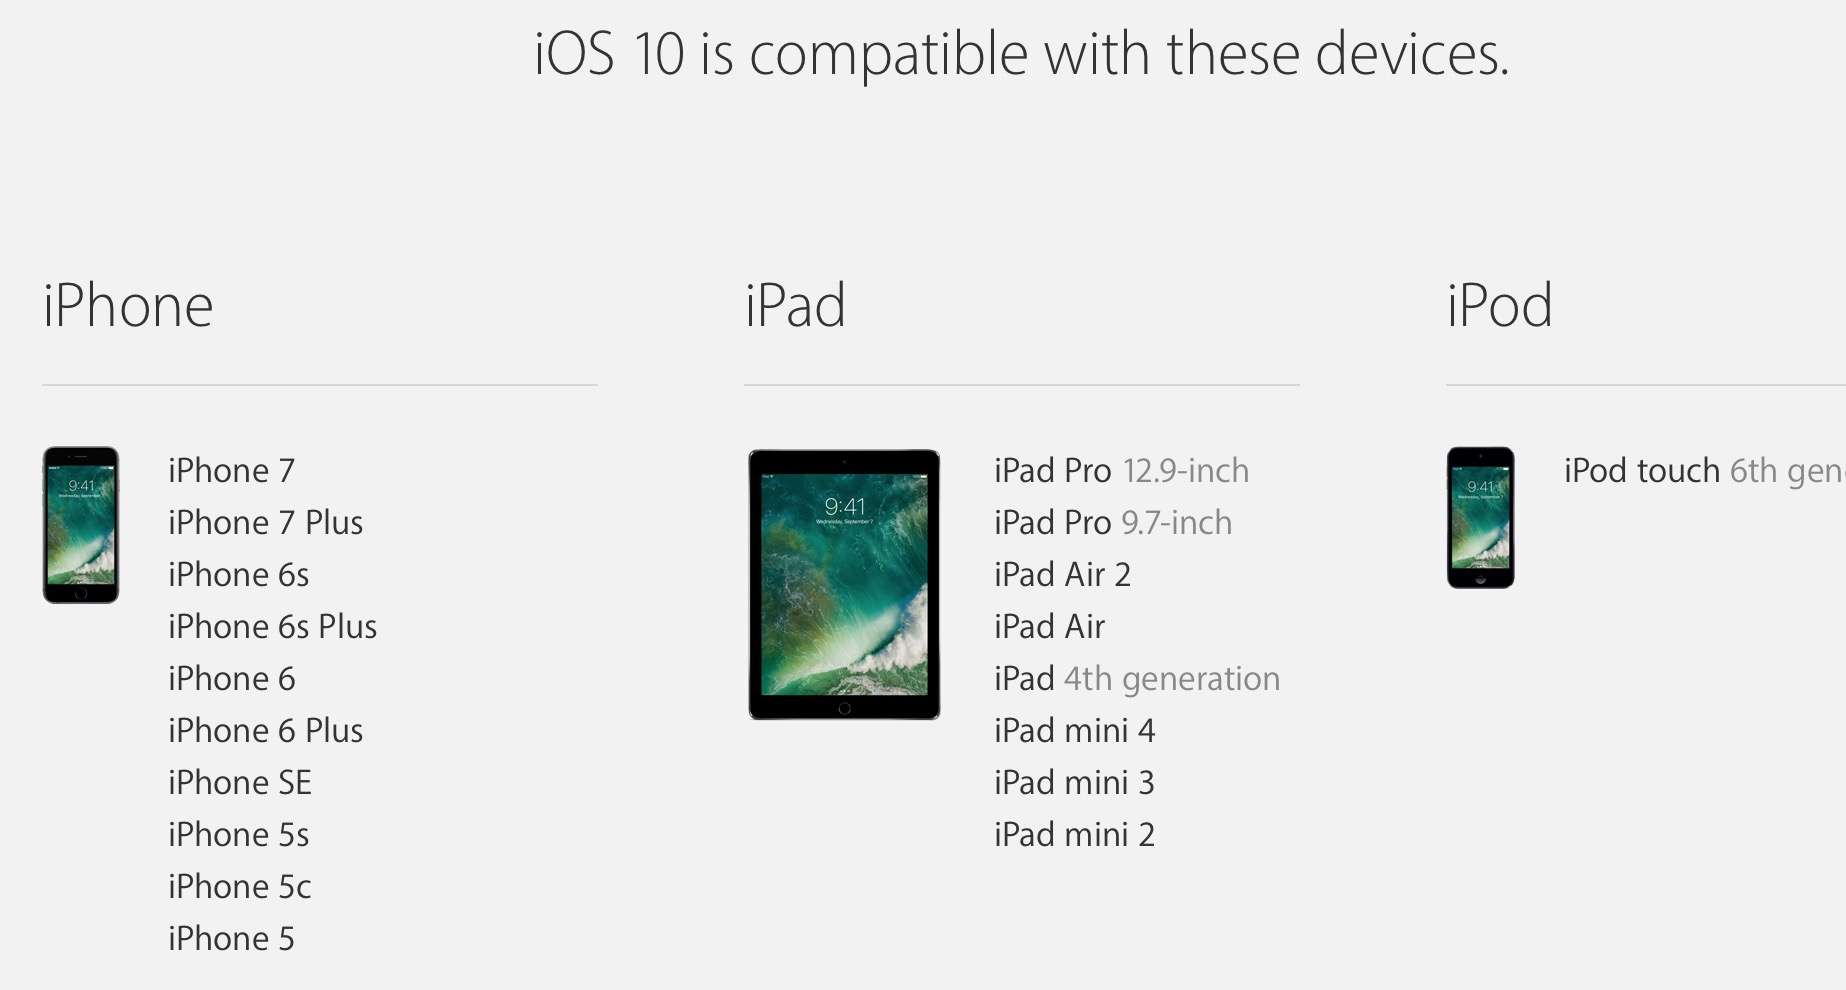 The official list of supported iOS 10 devices